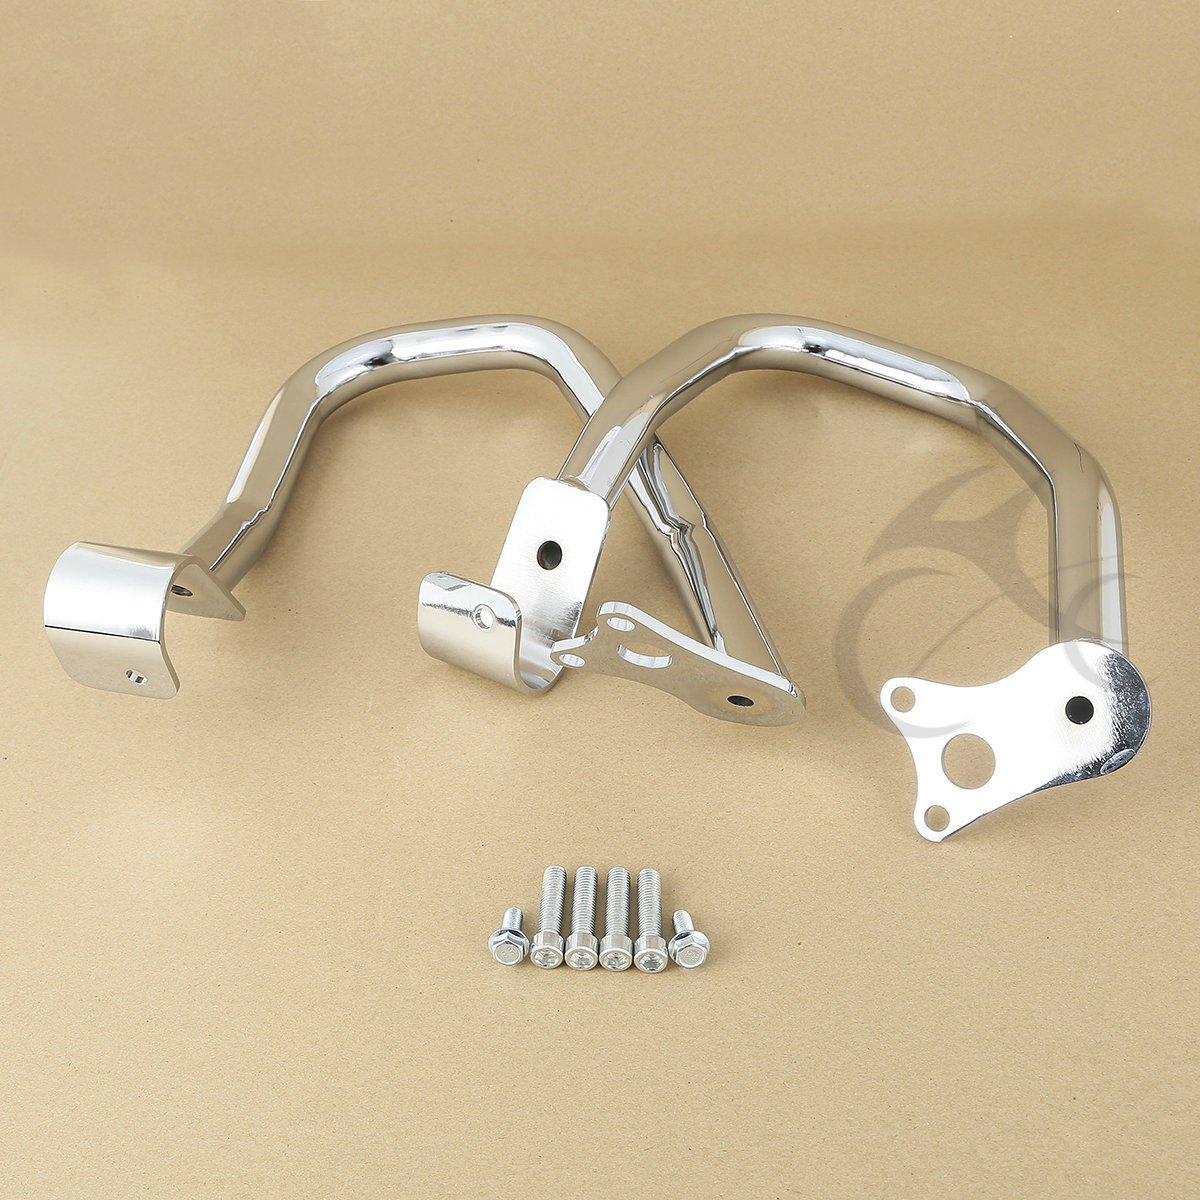 XFMT Highway Engine Guard Crash Bar Kit Compatible with Indian Scout 2015-2016 Scout Sixty 2016 2881756-156 Replace Part Number